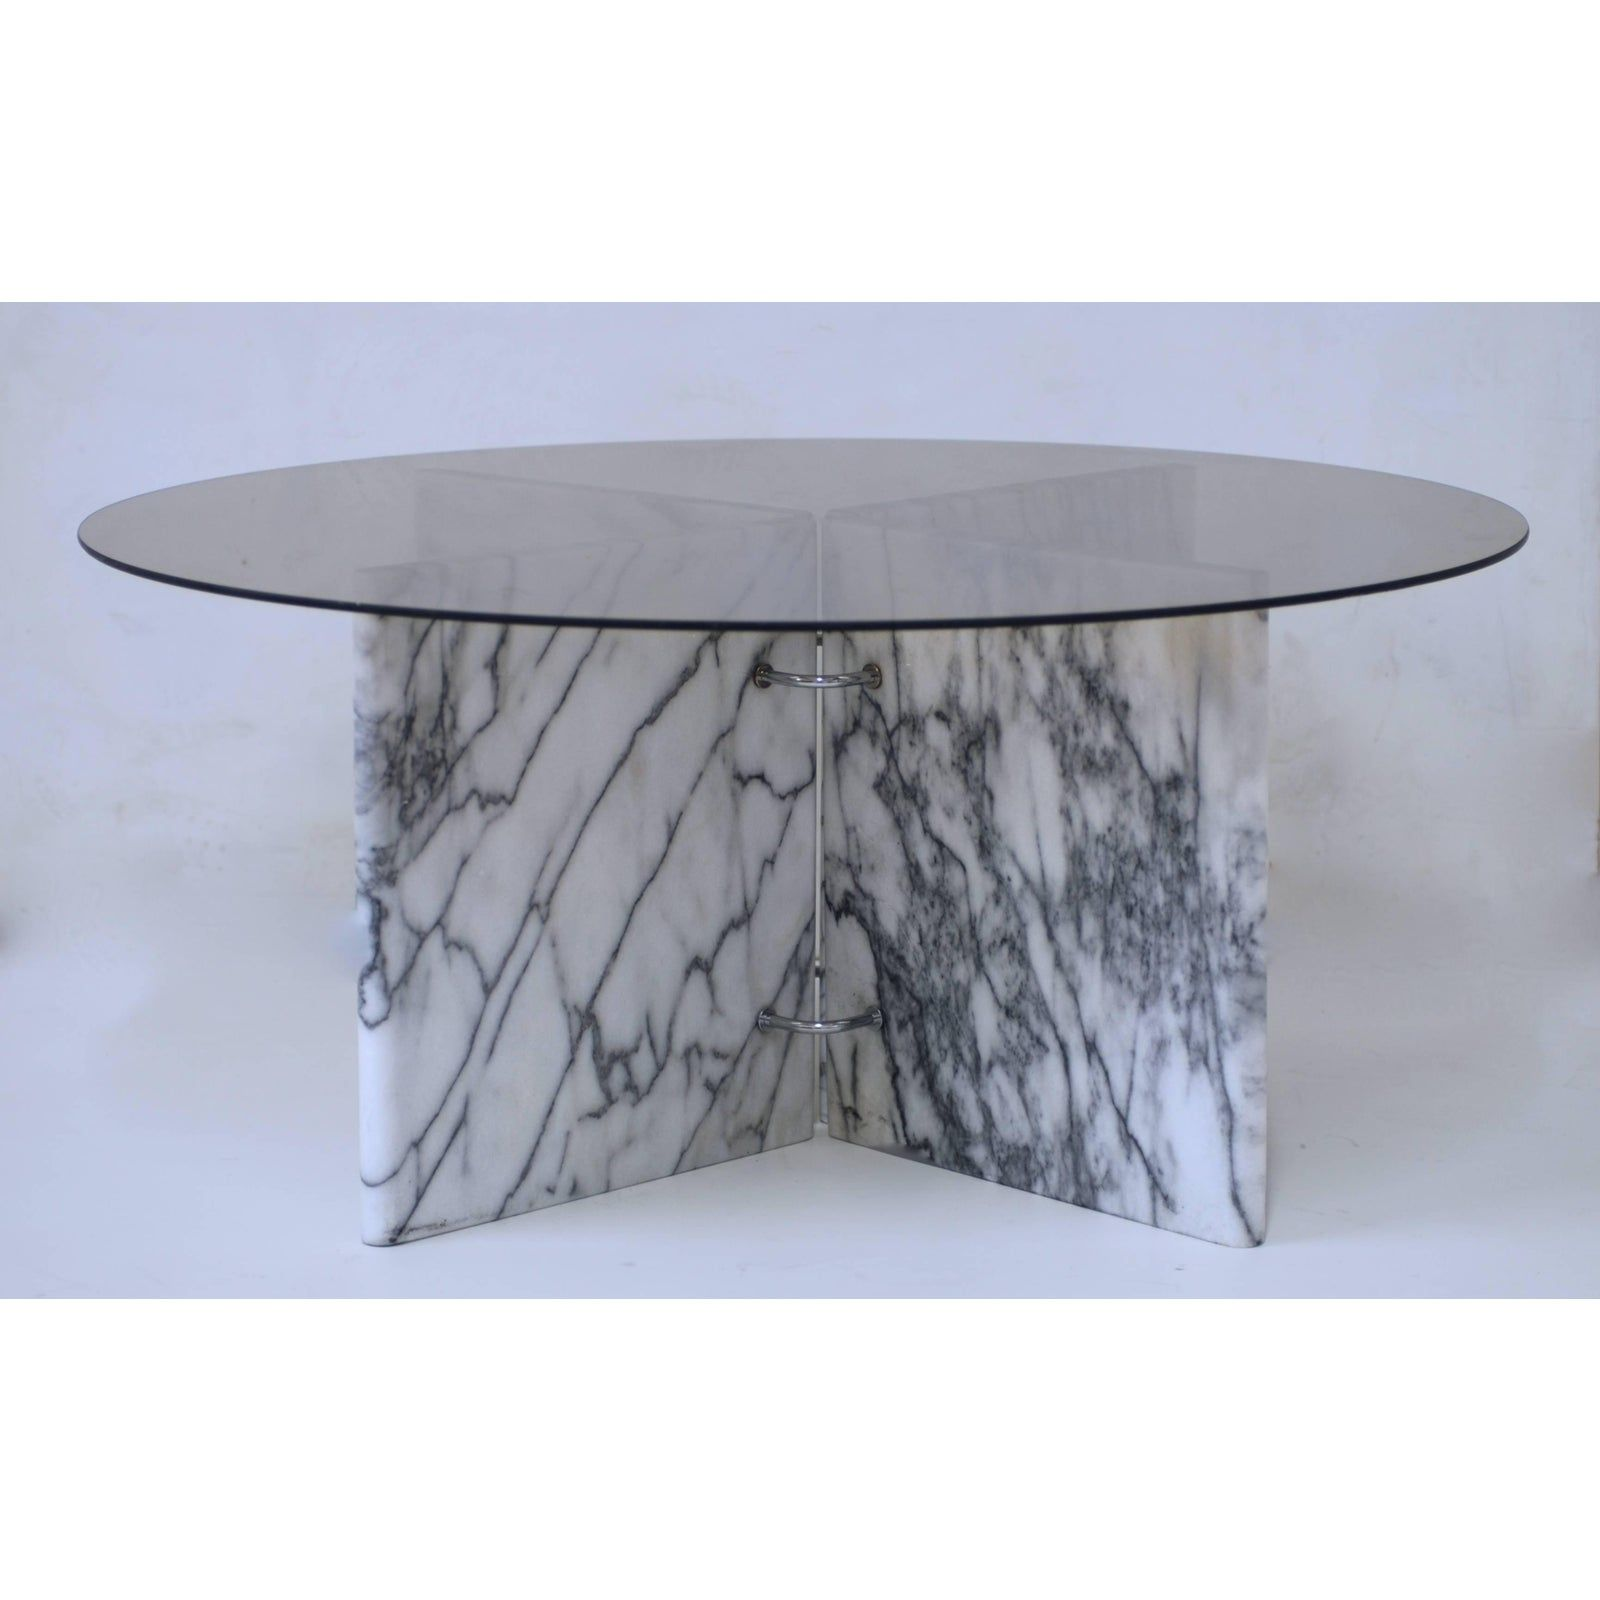 Low Carrara Square Or Rectangular Or Round Glass And Marble Cocktail Table Base In 2021 Marble Cocktail Table Round Glass Table Round Glass Coffee Table [ 1600 x 1600 Pixel ]